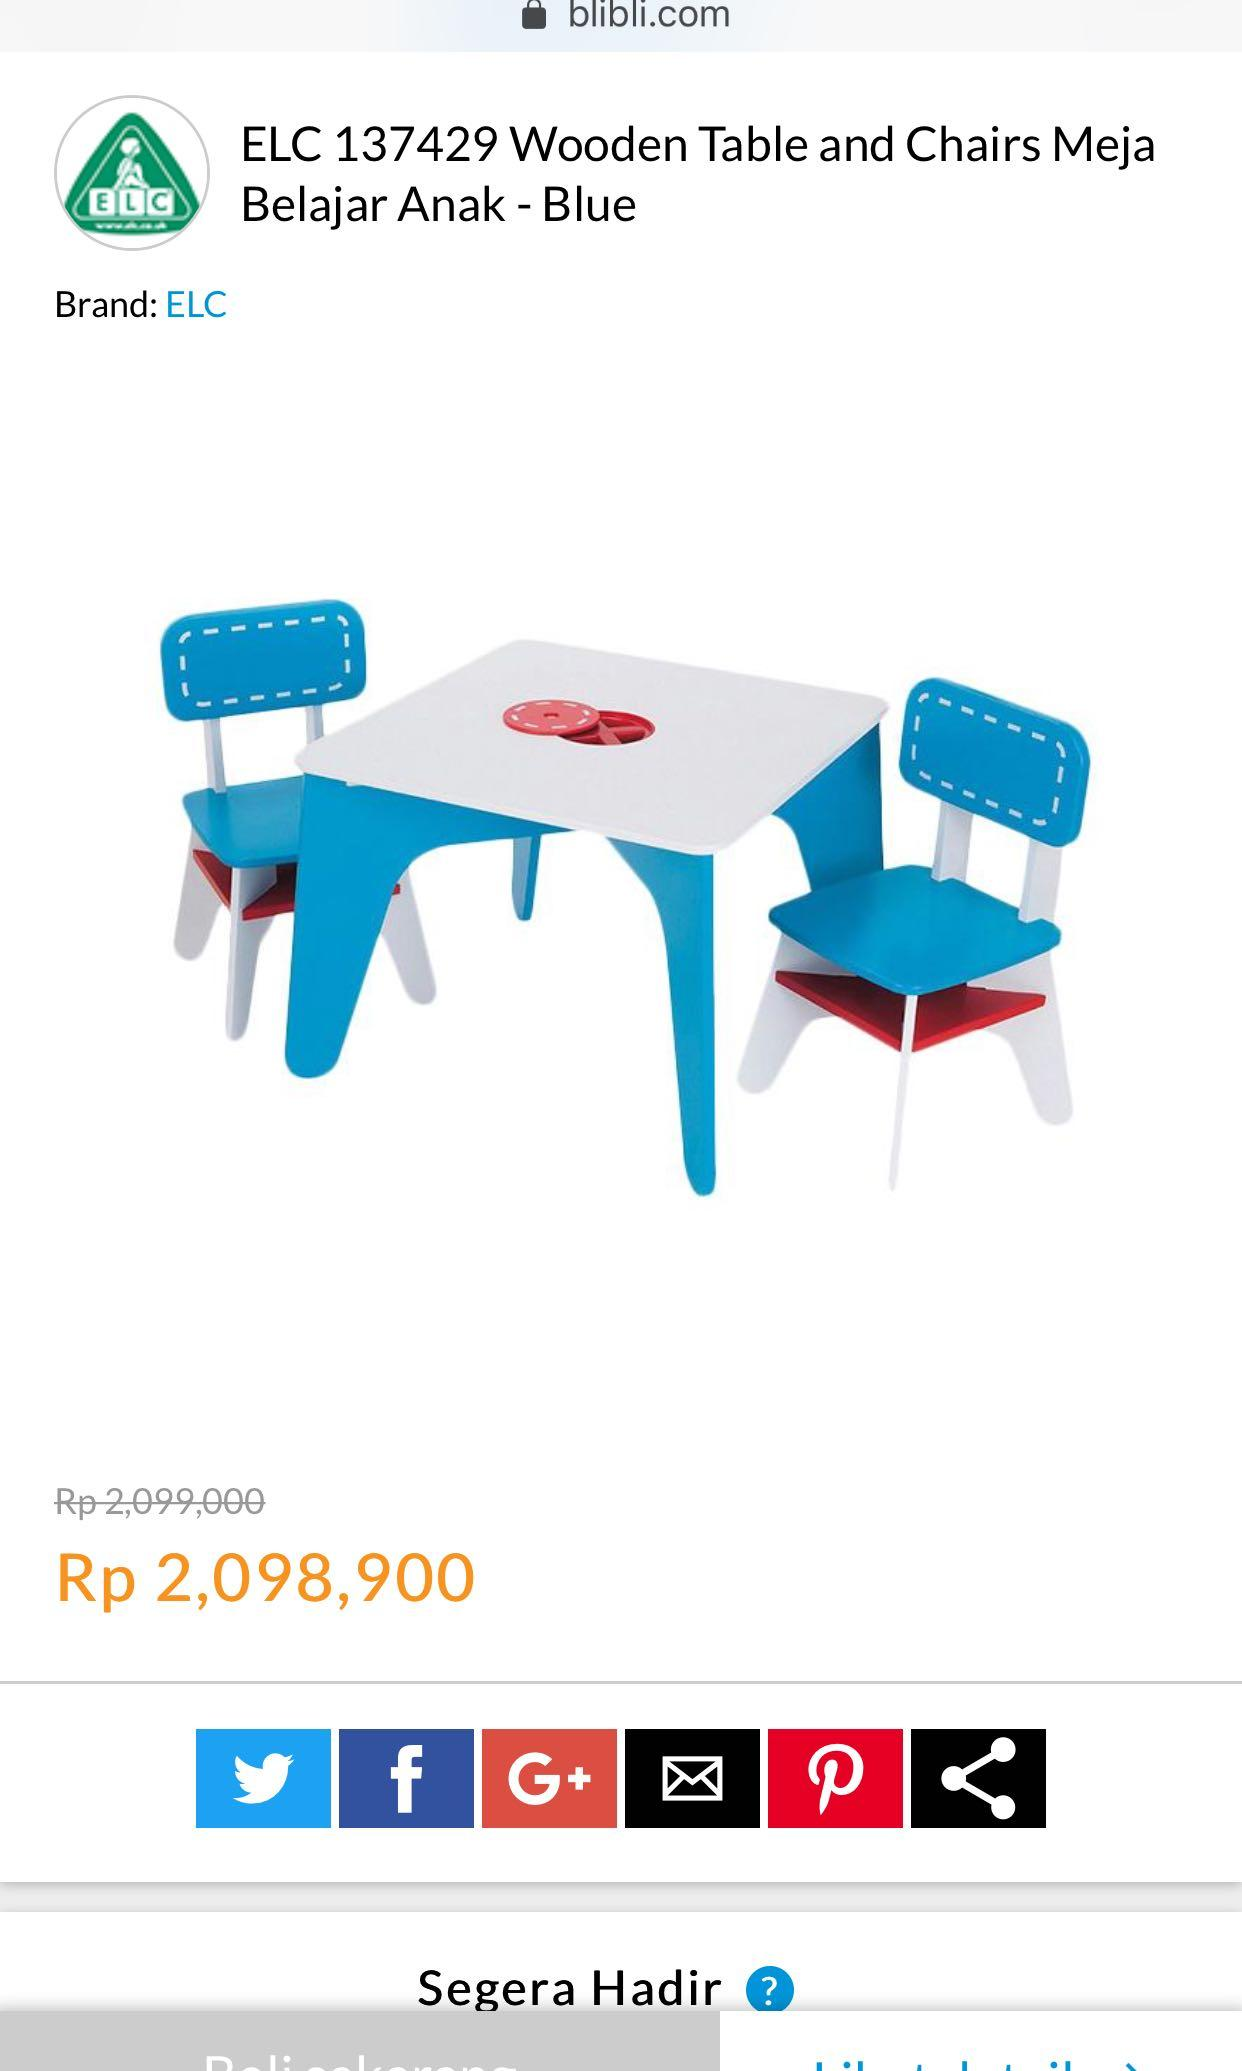 ELC Wooden Table n cairs